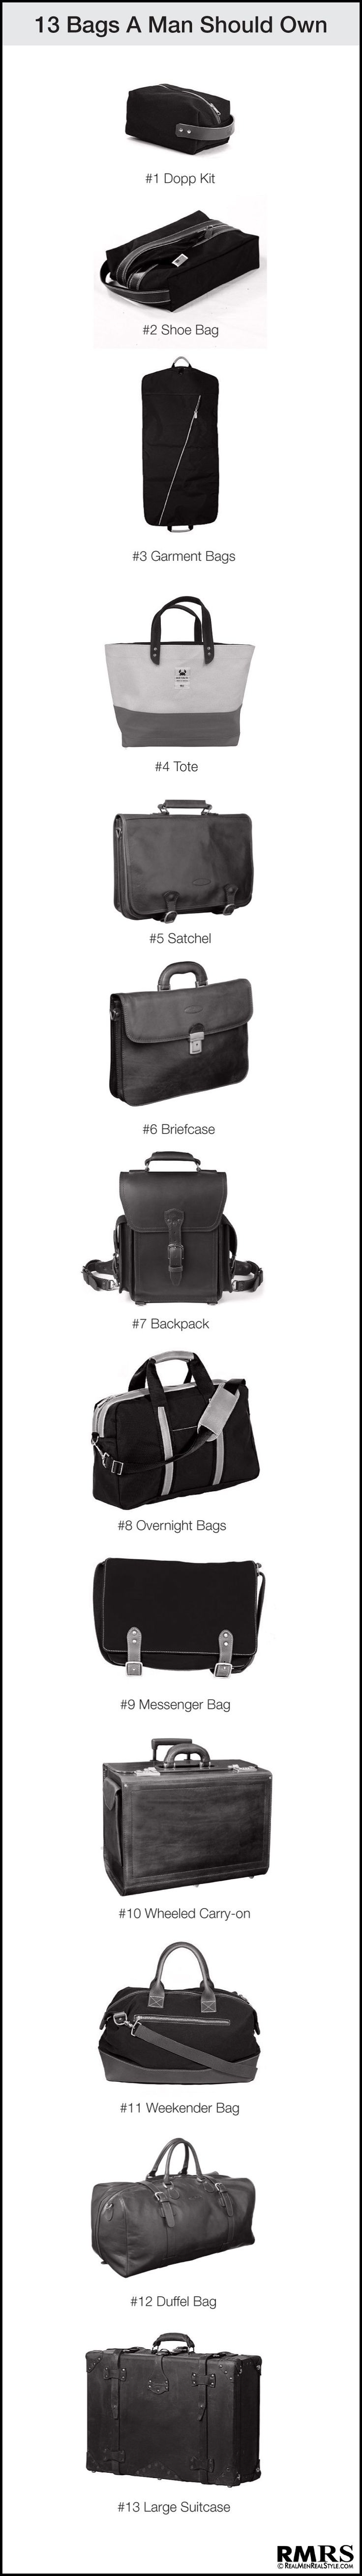 13 Bags A Man Should Own Dopp Kit Shoe Bag Garment Bags Tote Satchel Briefcase Backpack Overnight Bags Messenger Bag Wheeled Carry-on Week...